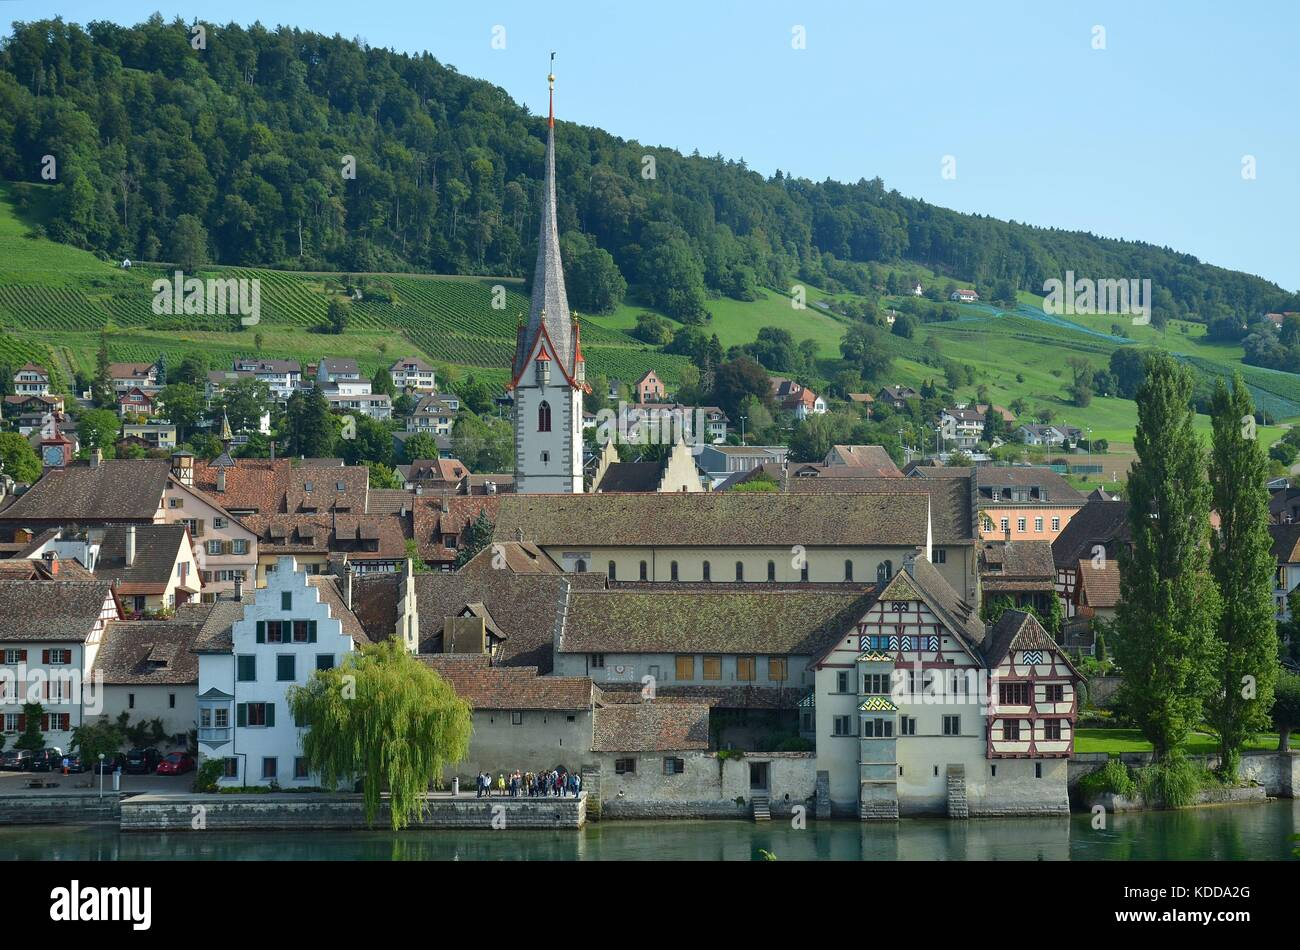 View of the historical town of Stein am Rhein, Switzerland - Stock Image